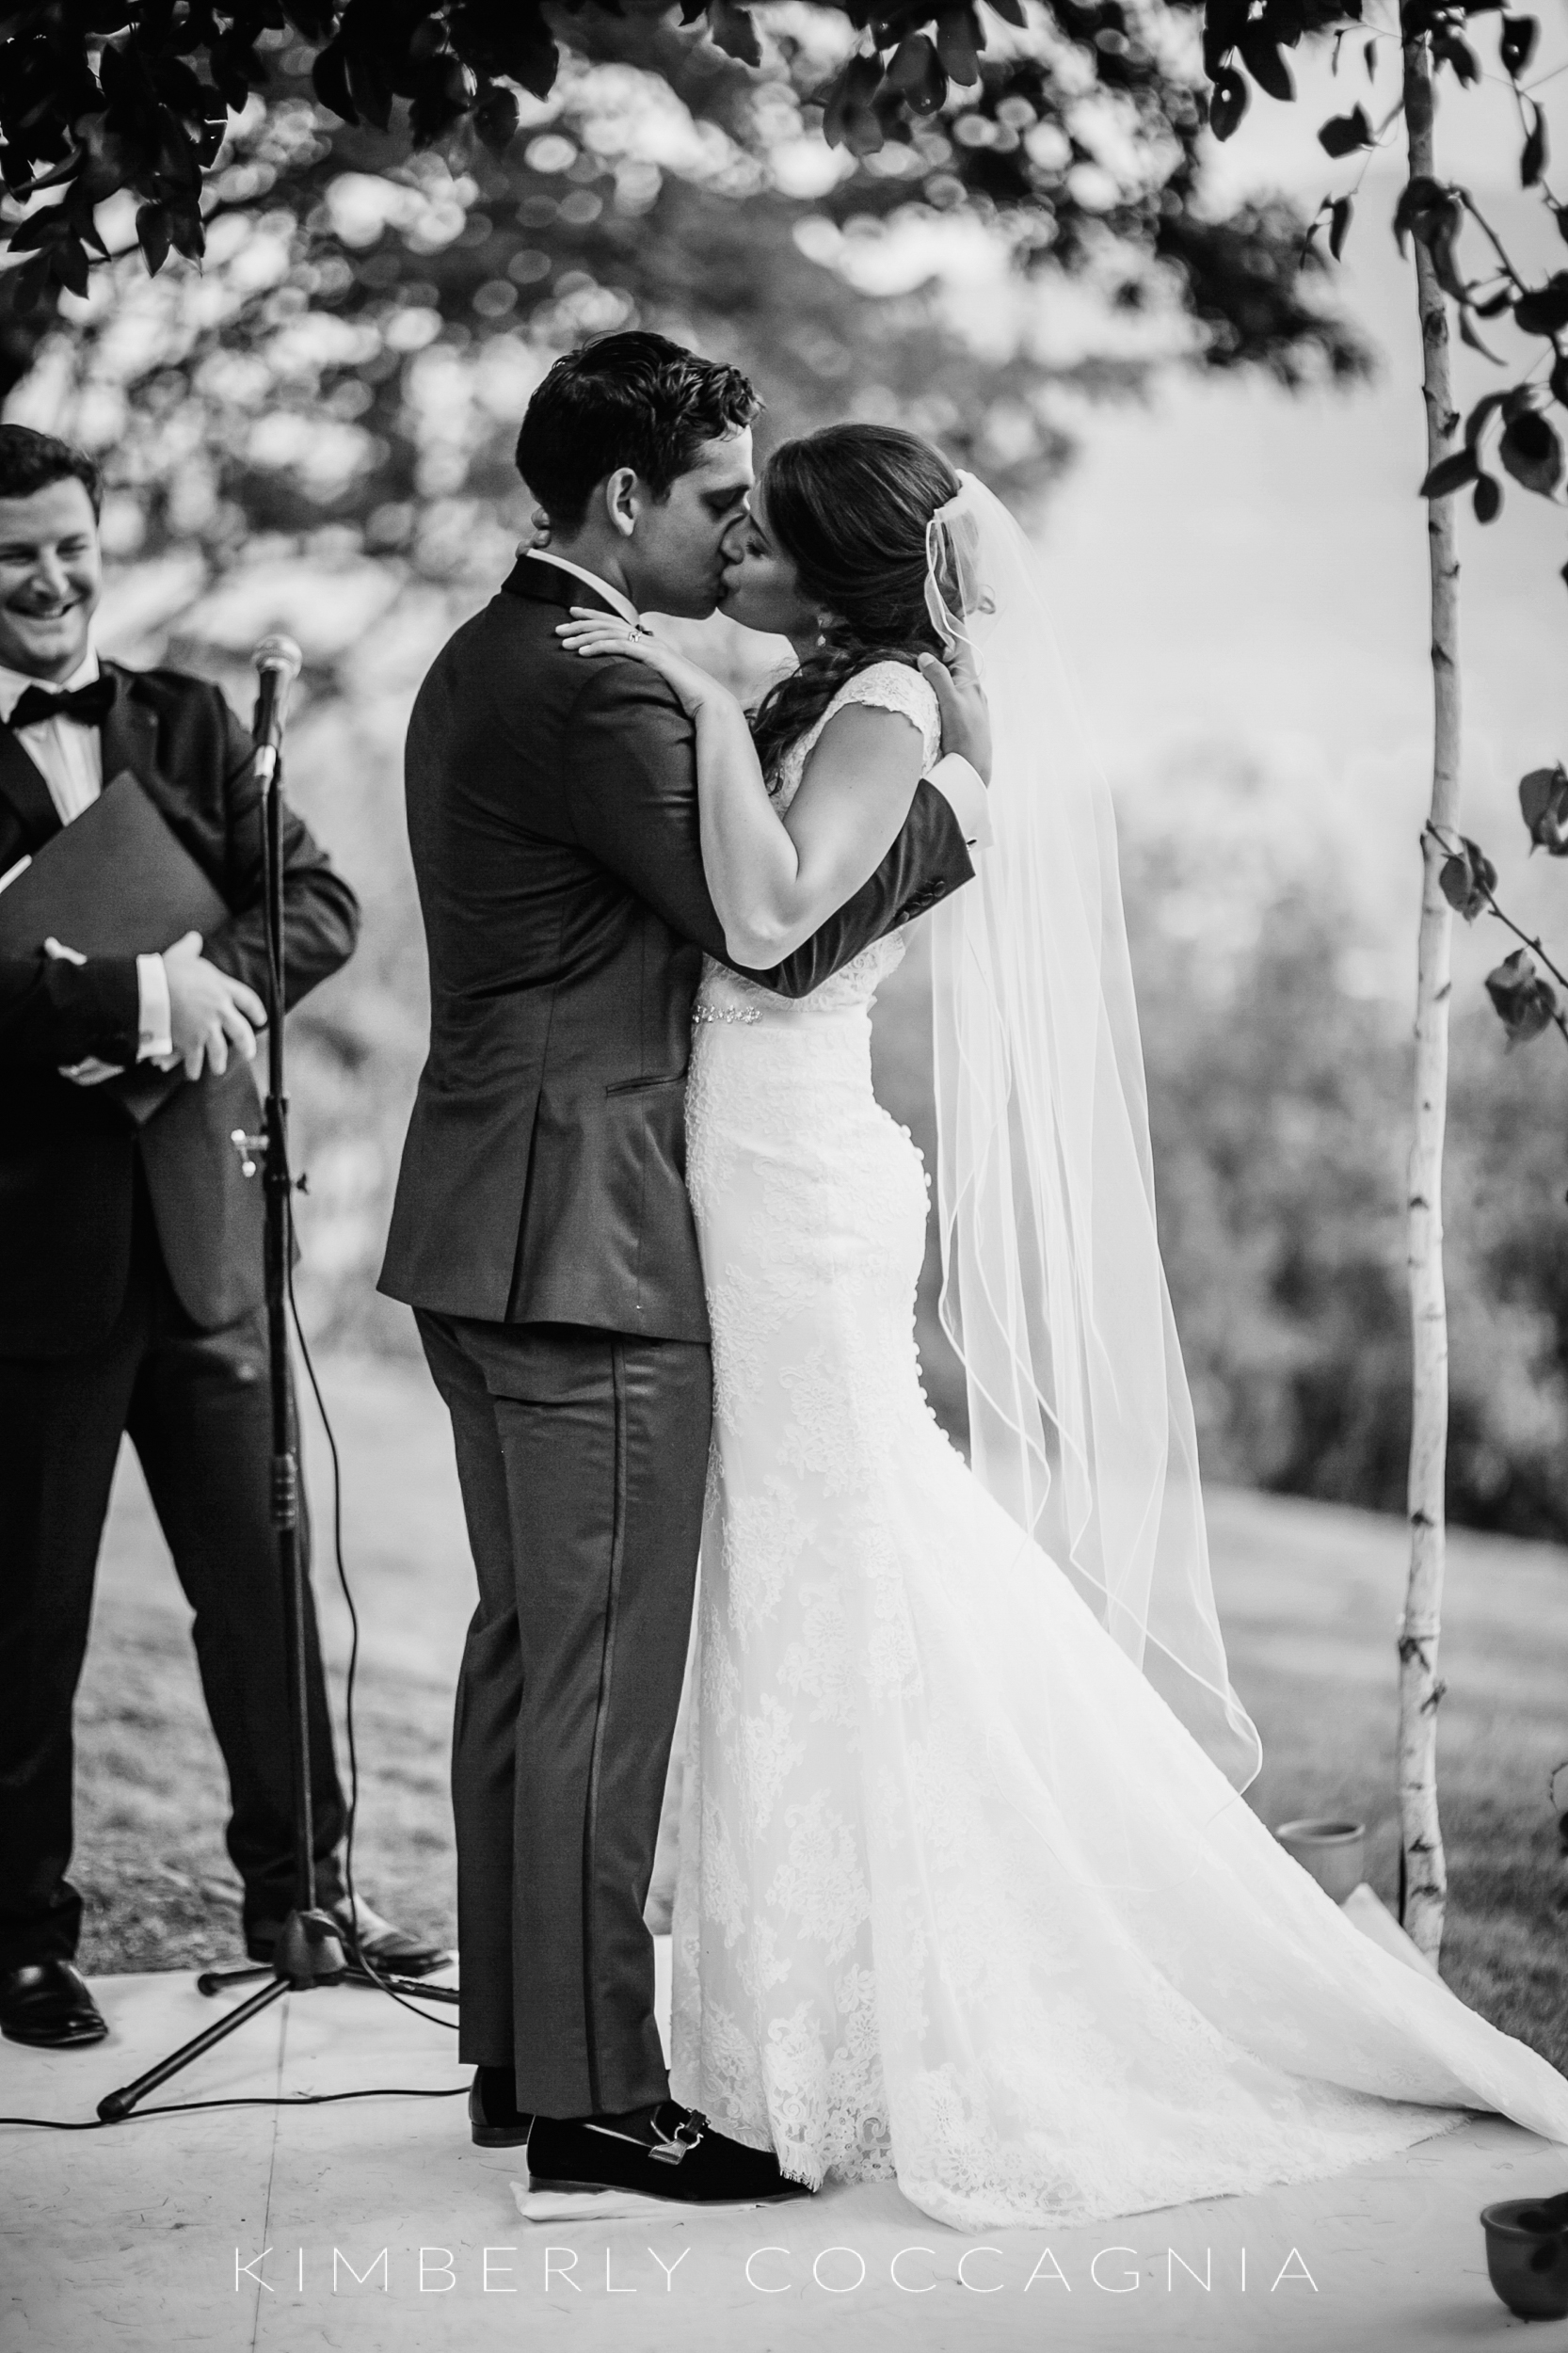 Kimberly+Coccagnia+Hudson+Valley+Wedding+Photographer-81.JPG